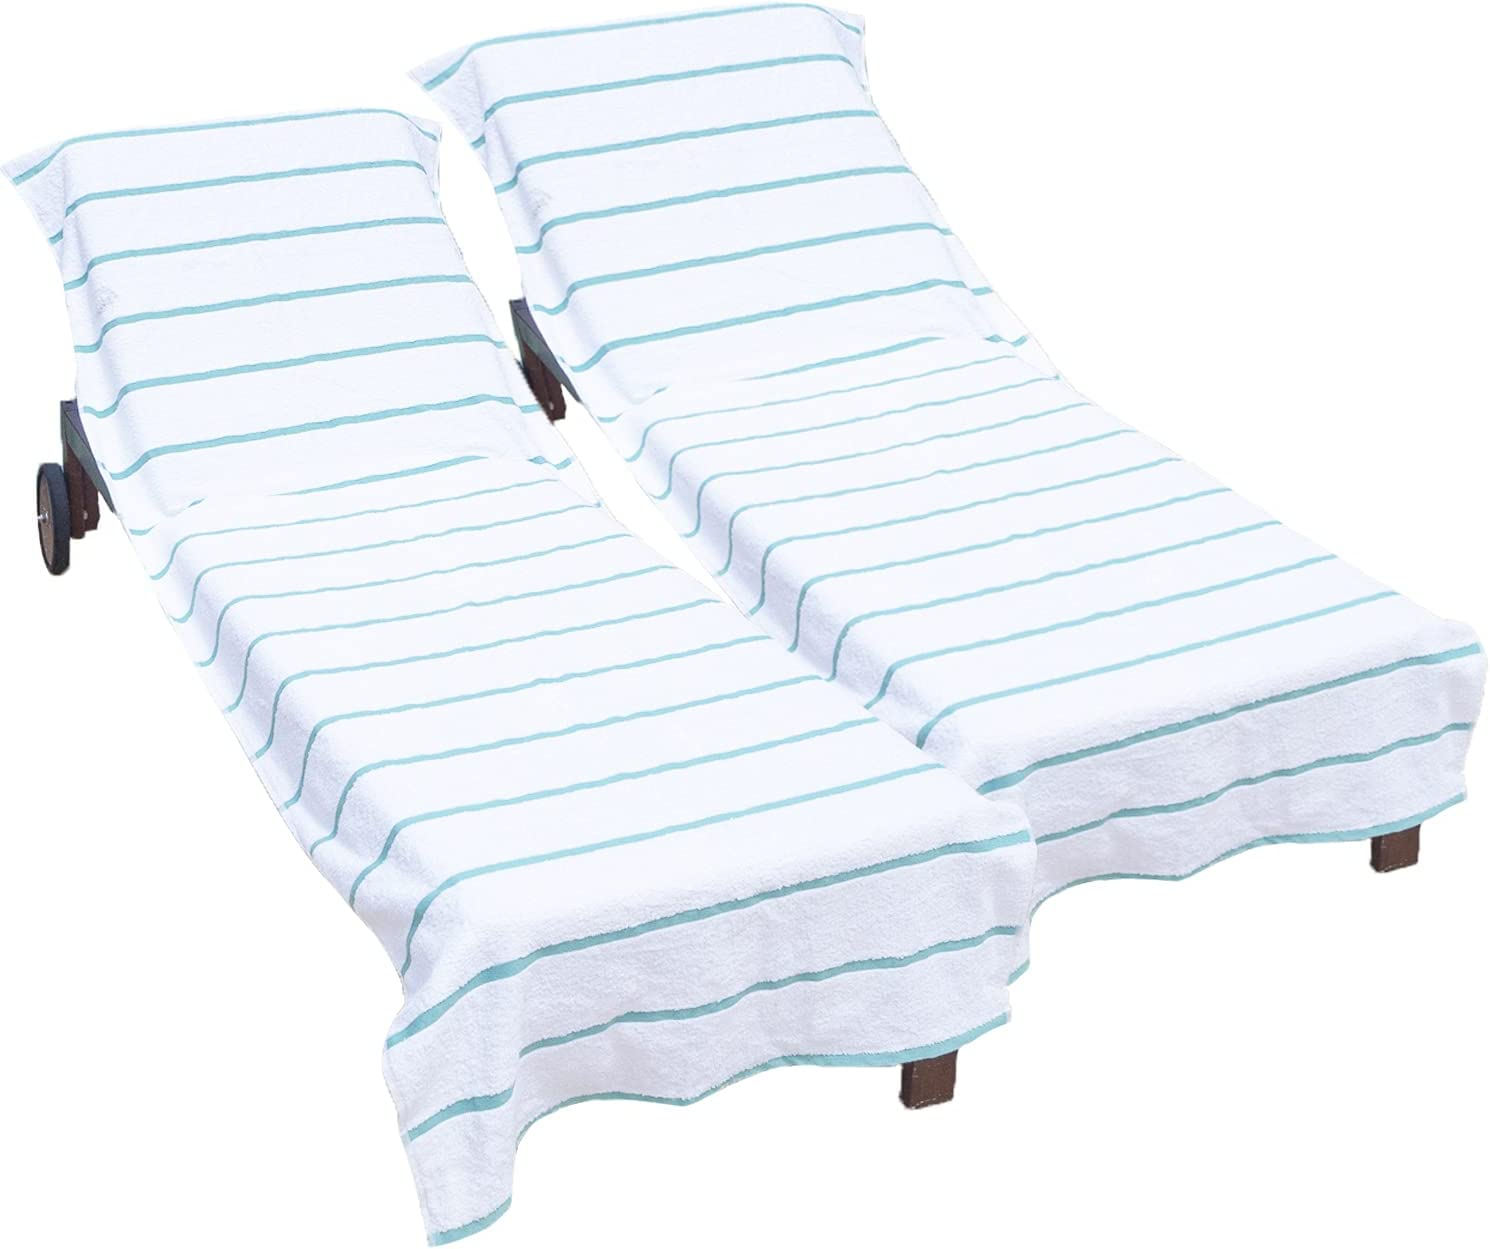 Arkwright Pool Chair Covers (Oversized:30x85 Inch, 2-Pack), Cotton Chaise Lounge Cover with 8 Inch Deep Pocket to Fit Any Beach Chair (Green)